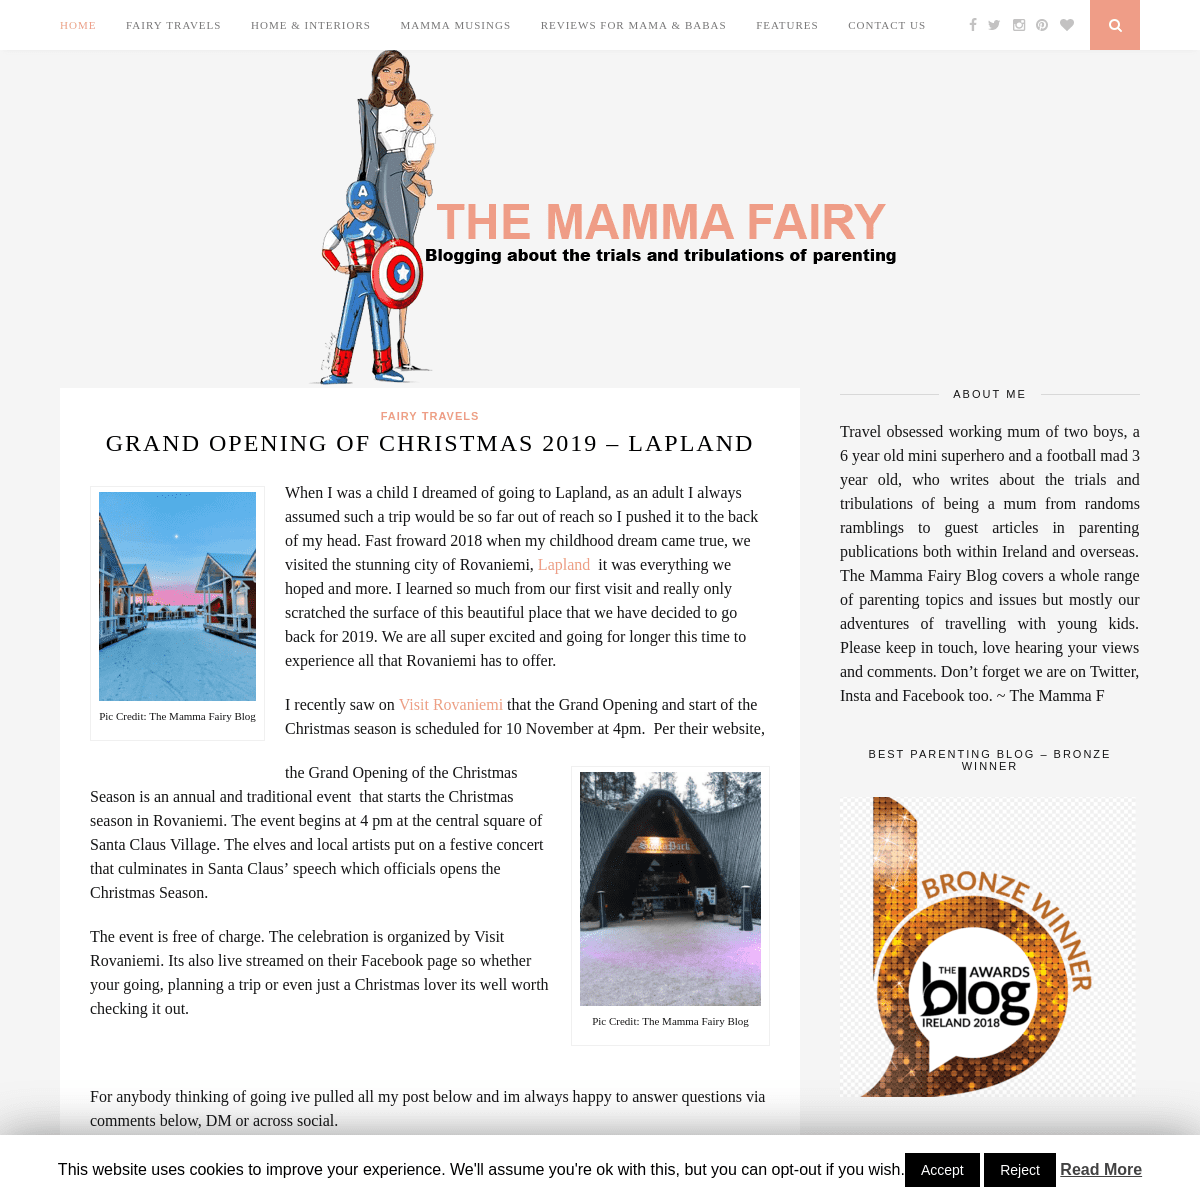 The Mamma Fairy - My Blog